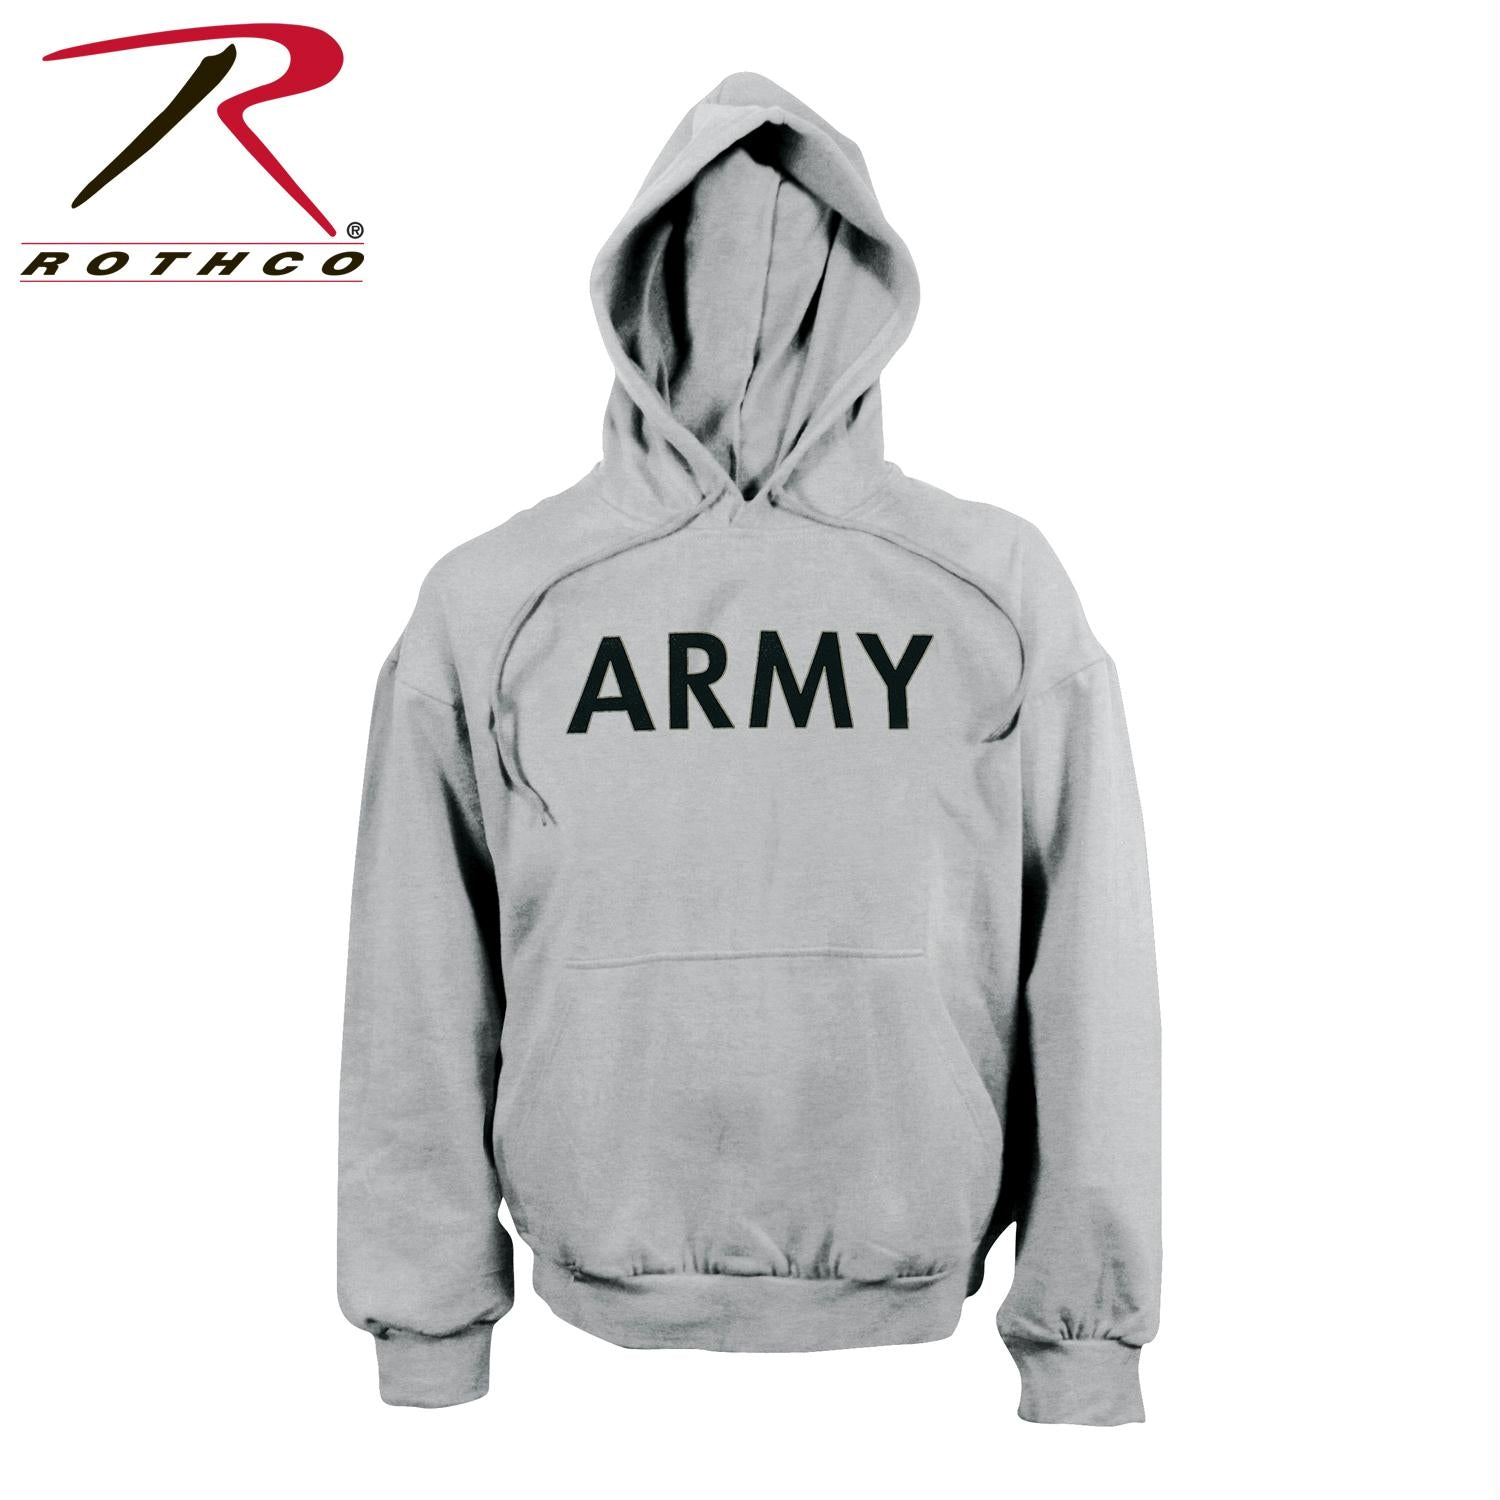 Rothco Army PT Pullover Hooded Sweatshirt - Grey / M